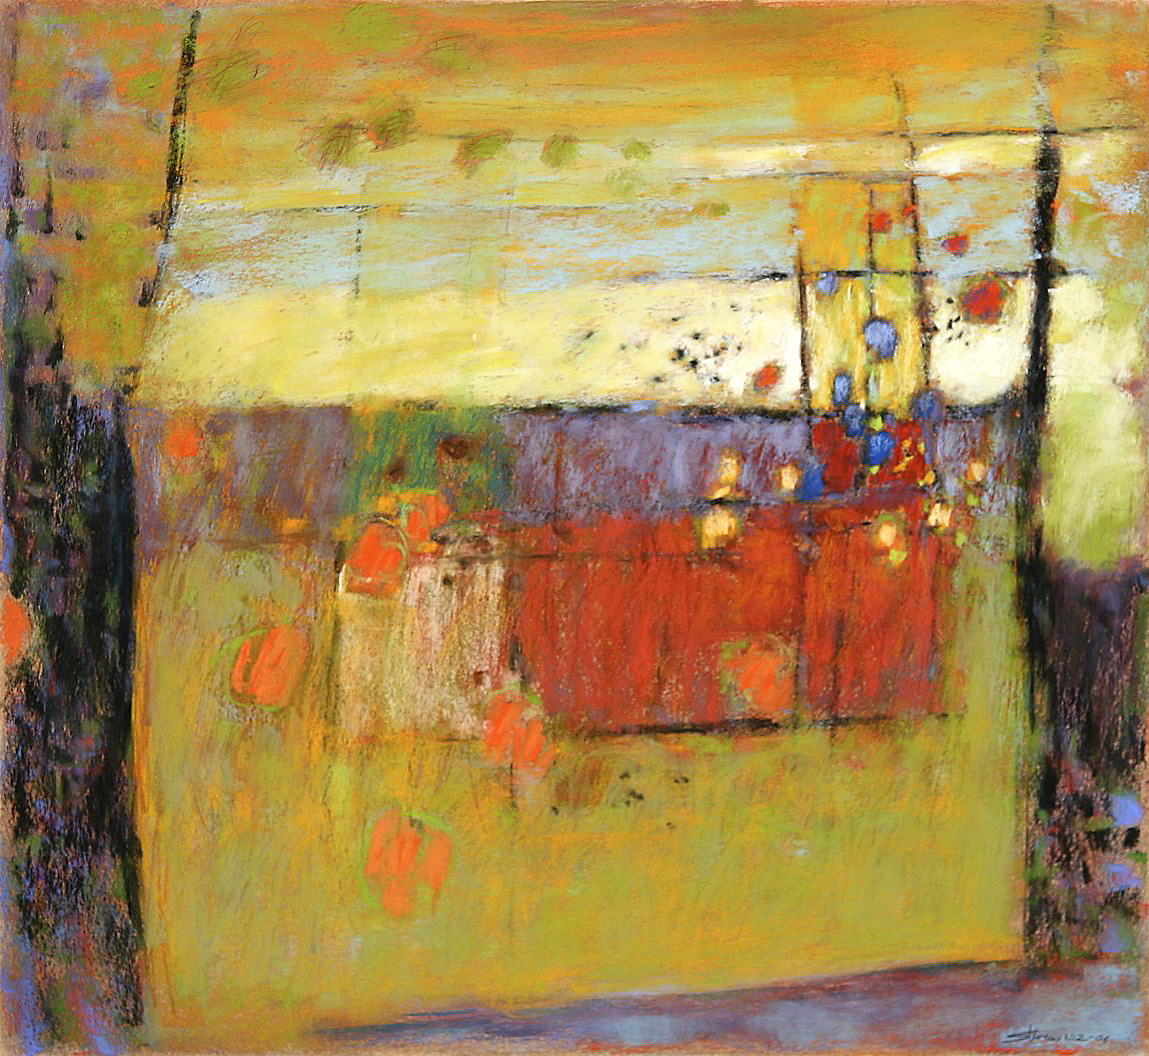 Surfacing | pastel on paper | 22 x 24"